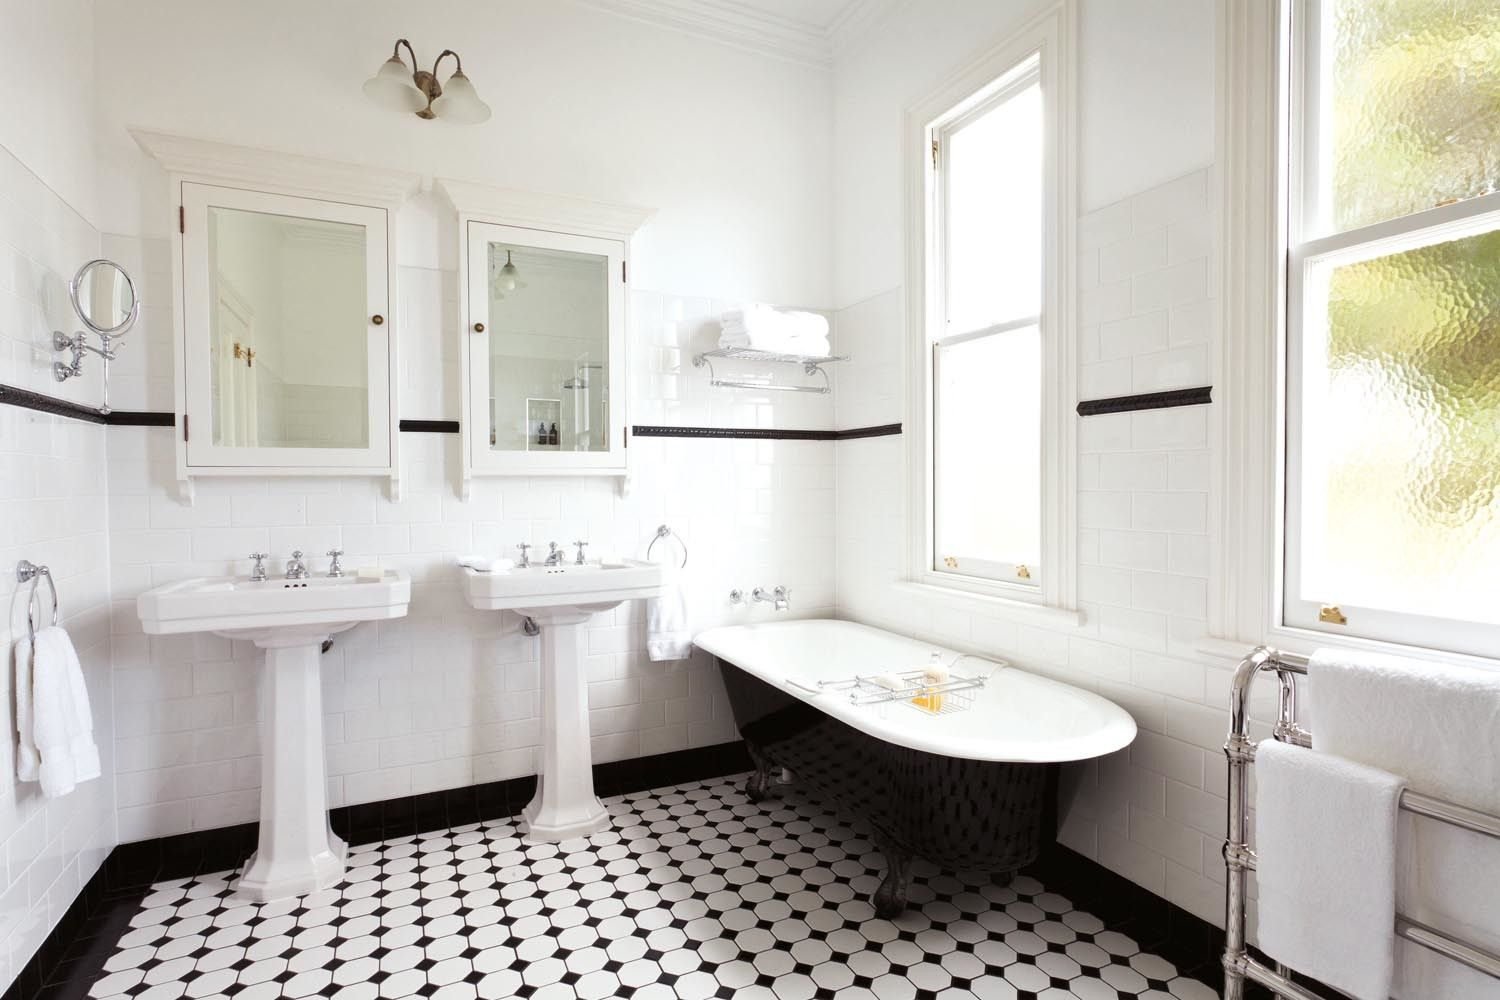 1920s Style Bathrooms That Inspire Rue Art Deco Bathroom Art Deco Bathroom Tile Bathroom Styling